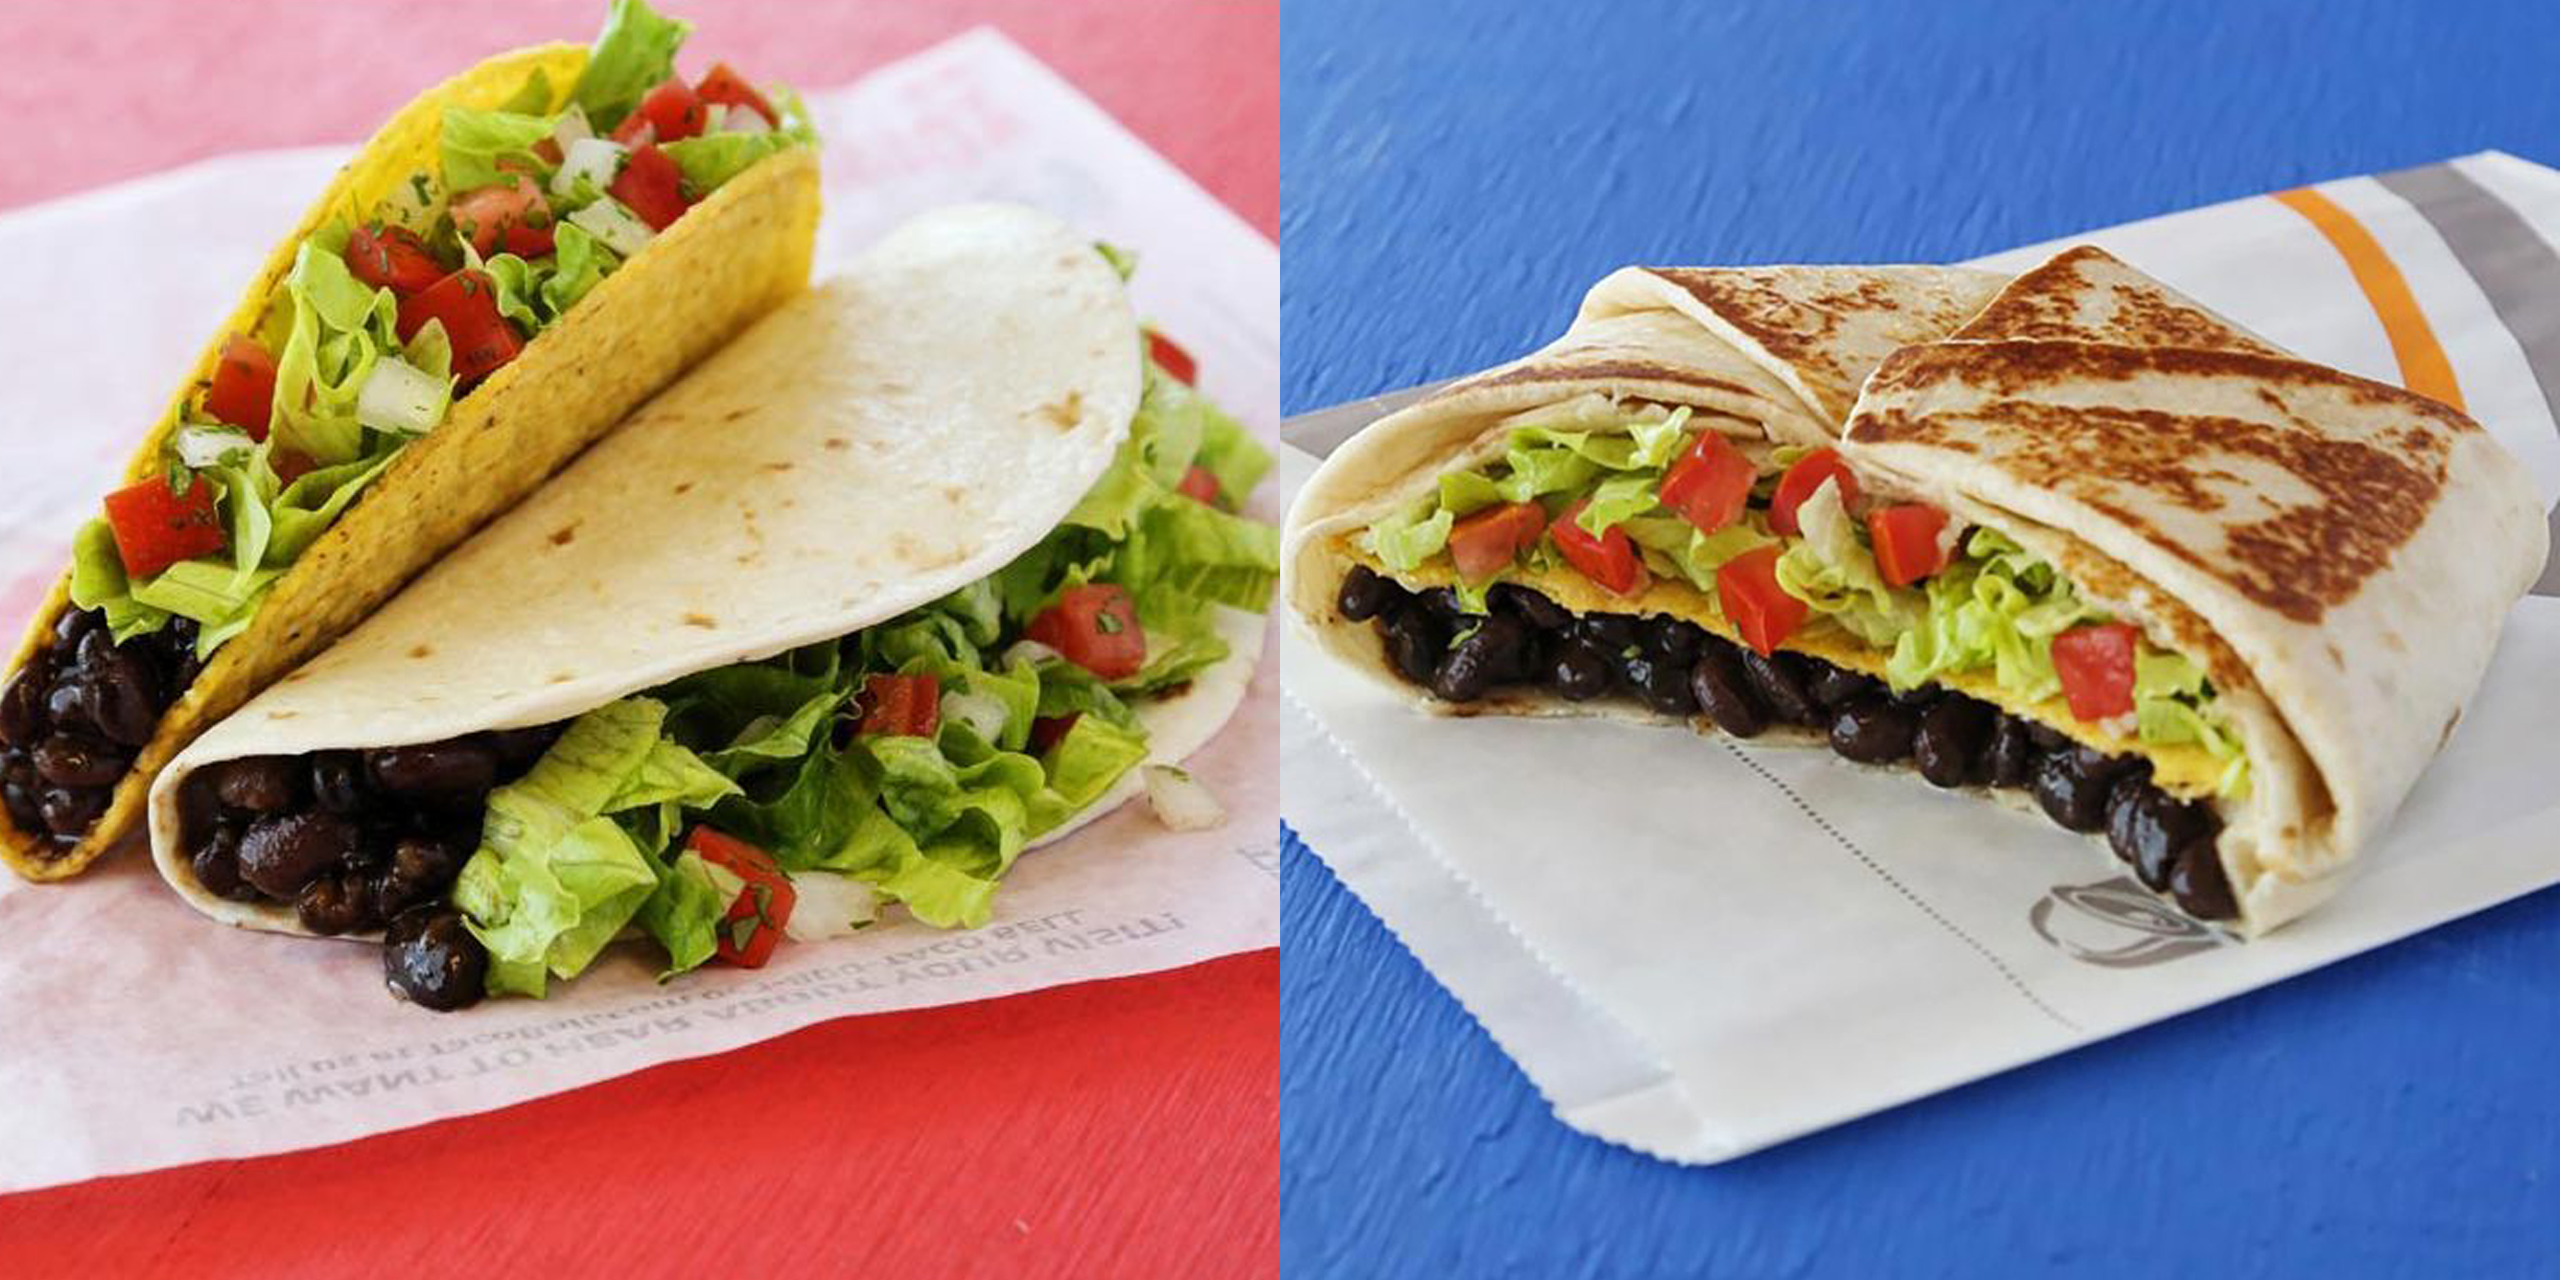 The Best Vegan Options At Taco Bell Vegan Taco Bell Menu